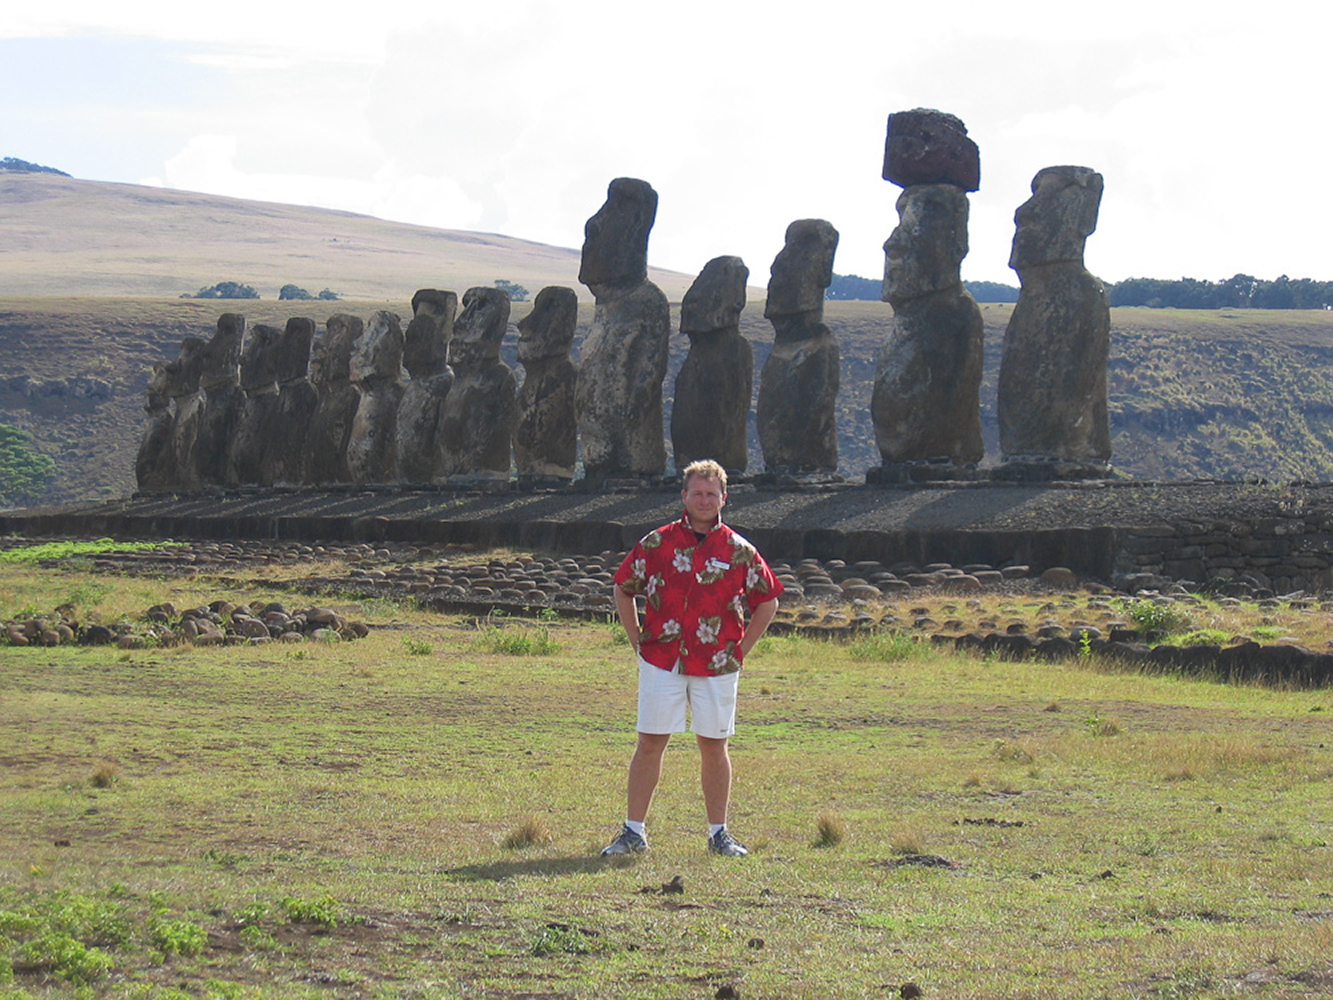 Easter Island, Chile, South Pacific. The imposing 15 giant Moai monolithic statues of Ahu Tongariki